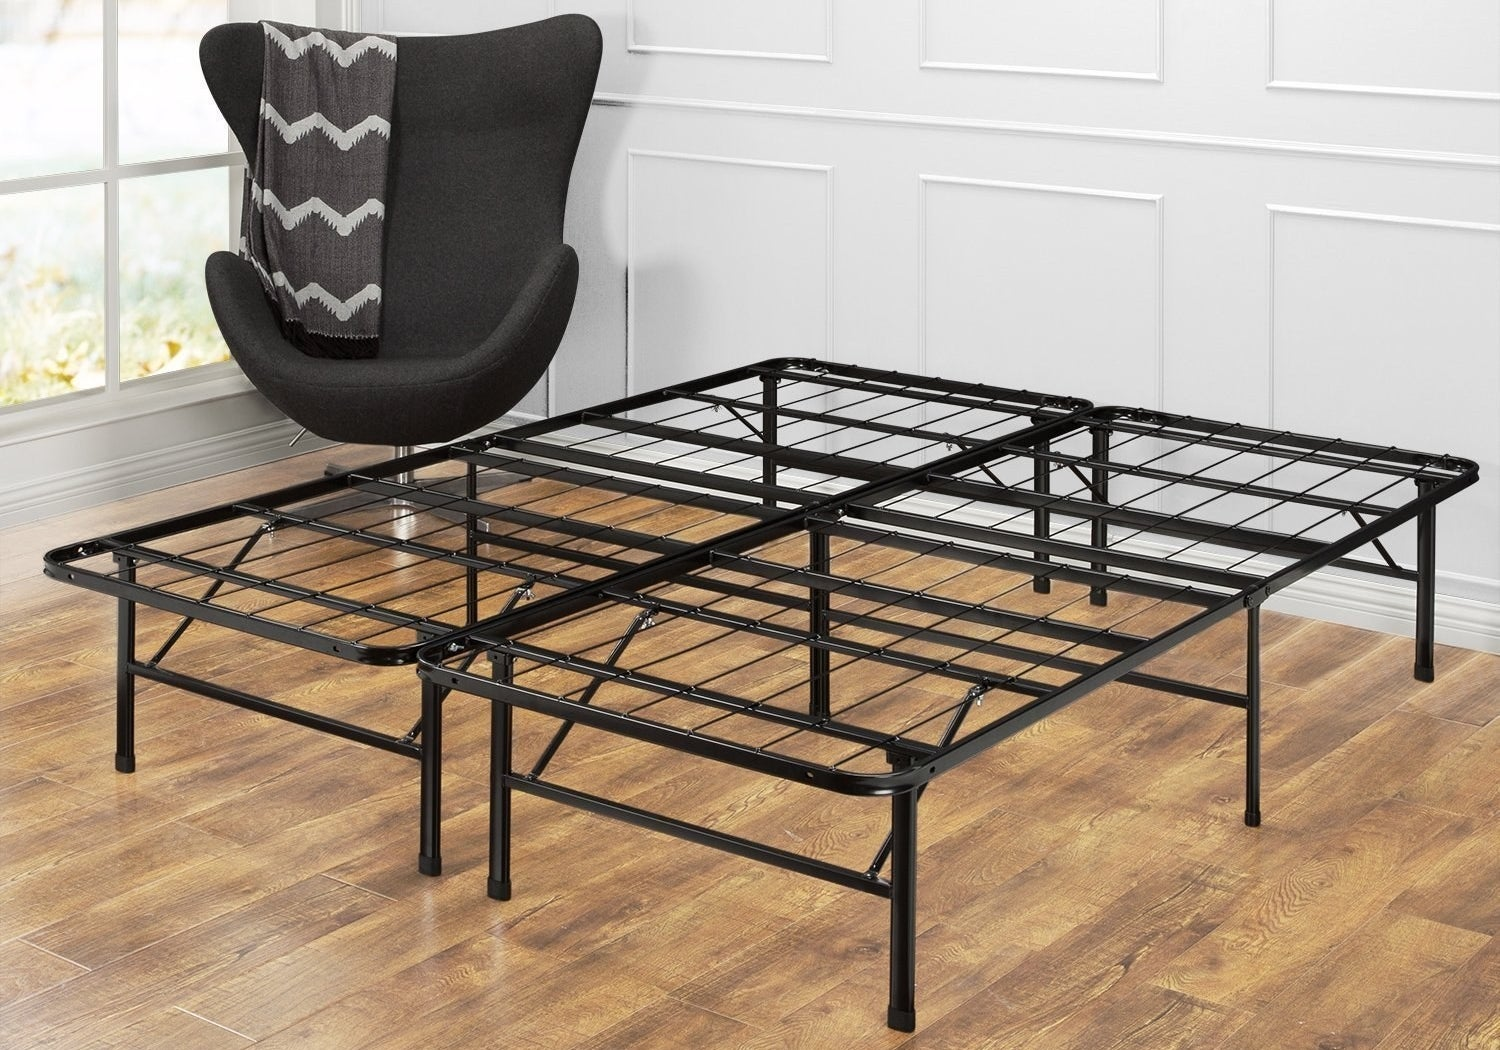 "Promising Review: ""I love this sturdy and simple bed frame! The frame is really cool because it collapses down in a matter of minutes. The frame is only two inches thick and can be carried out easily by one person. That would be great for home staging. But I use it all the time. It's totally worth the price!"" —CharlieGet it from Amazon for $58+ (available in seven sizes), Jet for $58+ (available in six sizes), or Walmart for $58+ (available in five sizes).You can read a full review of the bedframe here."